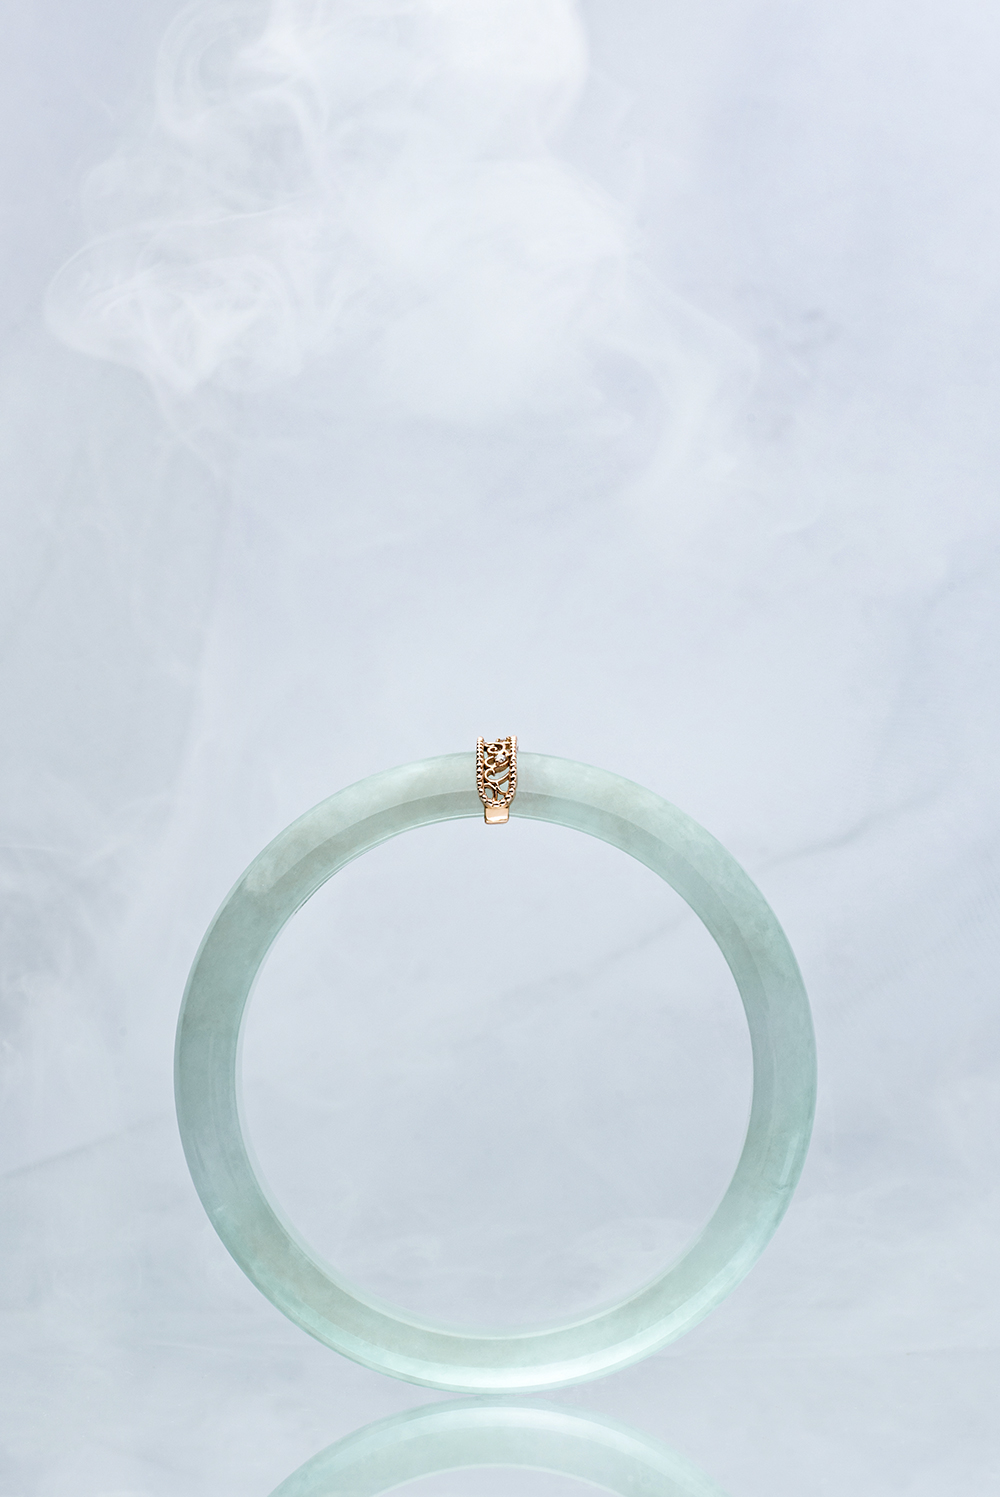 Lunar Jade Collection: World's Top 1% of Jadeite Bangles